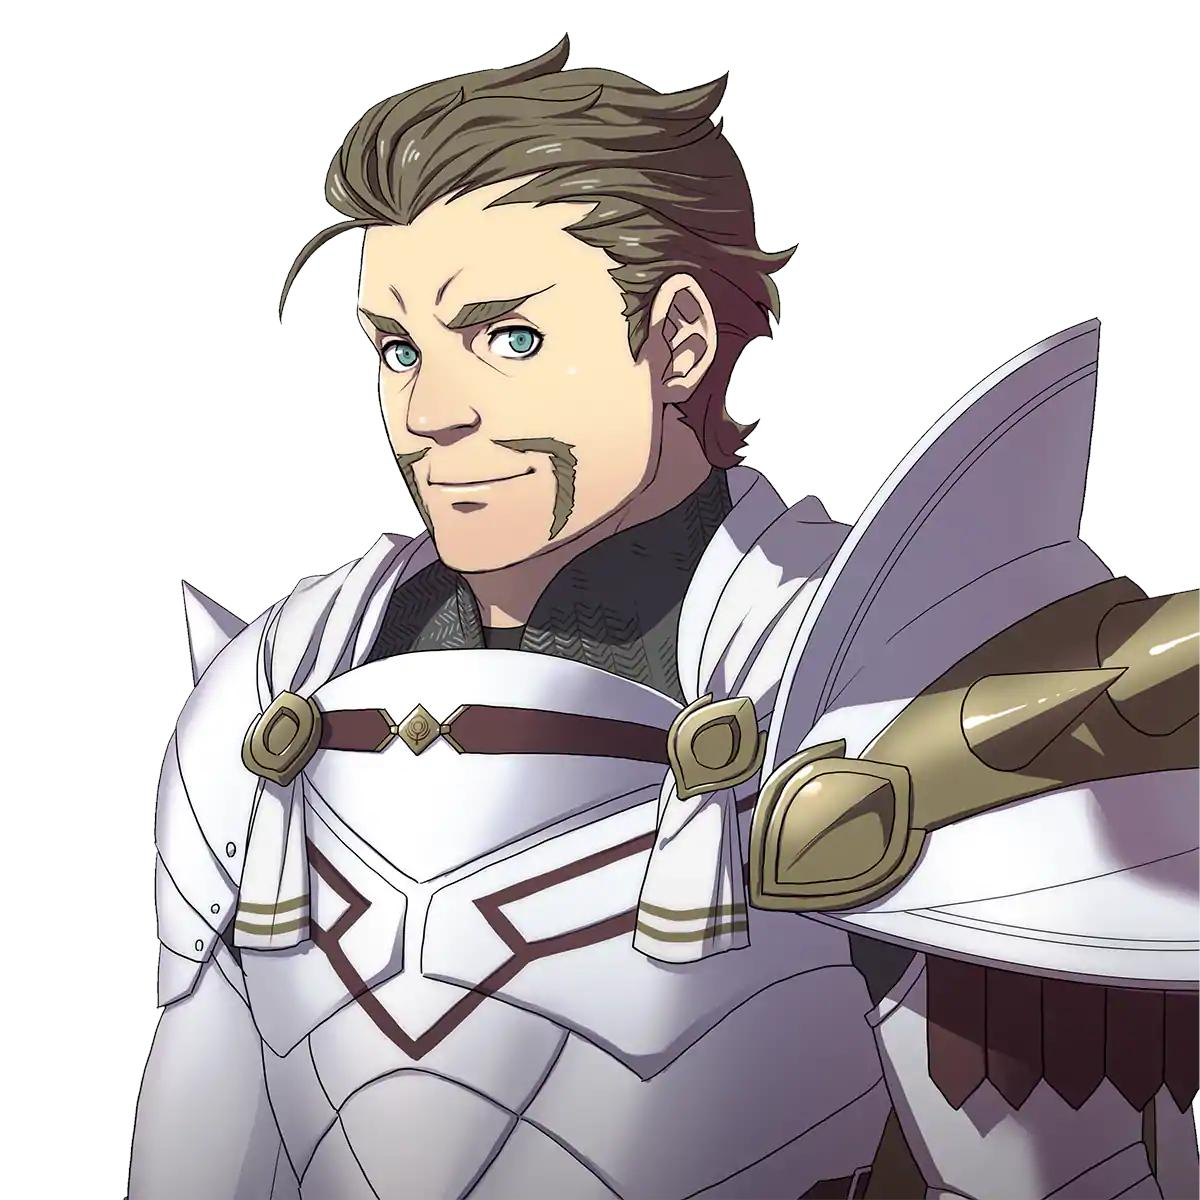 So the confirmed male/male romance options in FE: Three Houses have me feeling... very mixed. First of all, there are more female/female options than m/m. Second, two of these gay options are your dad's friends... Third, you can f/f with Edelgard but both male lords can't be m/m